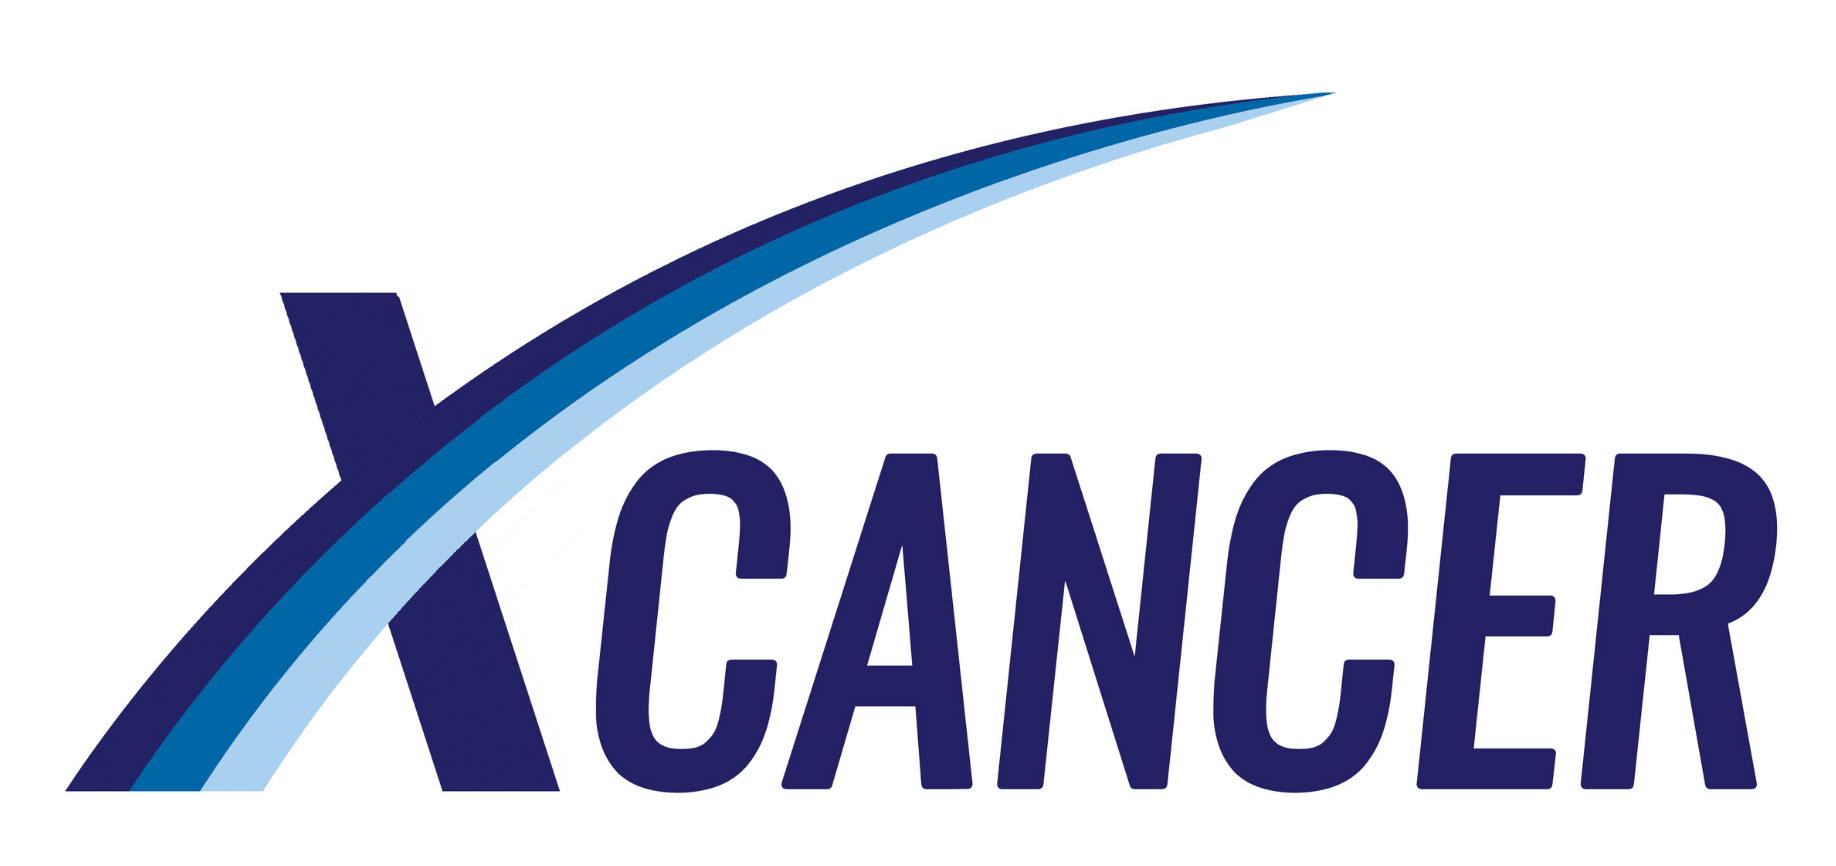 XCancer Research